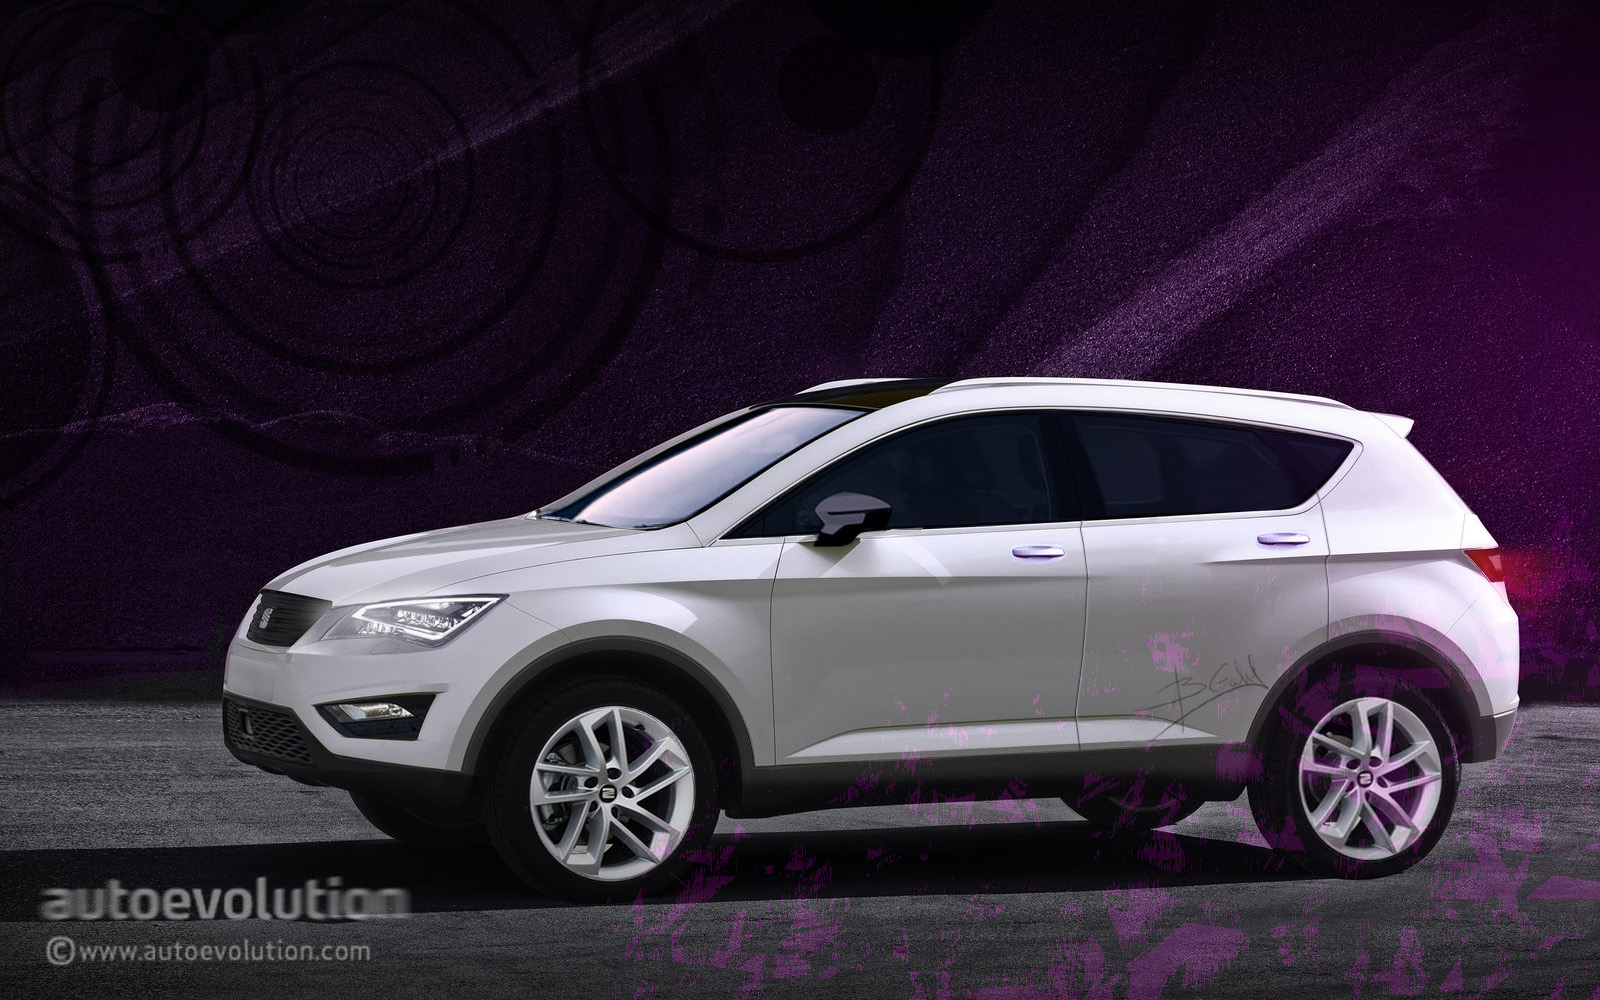 2016 seat suv to be called prostyle will feature familiar design autoevolution. Black Bedroom Furniture Sets. Home Design Ideas